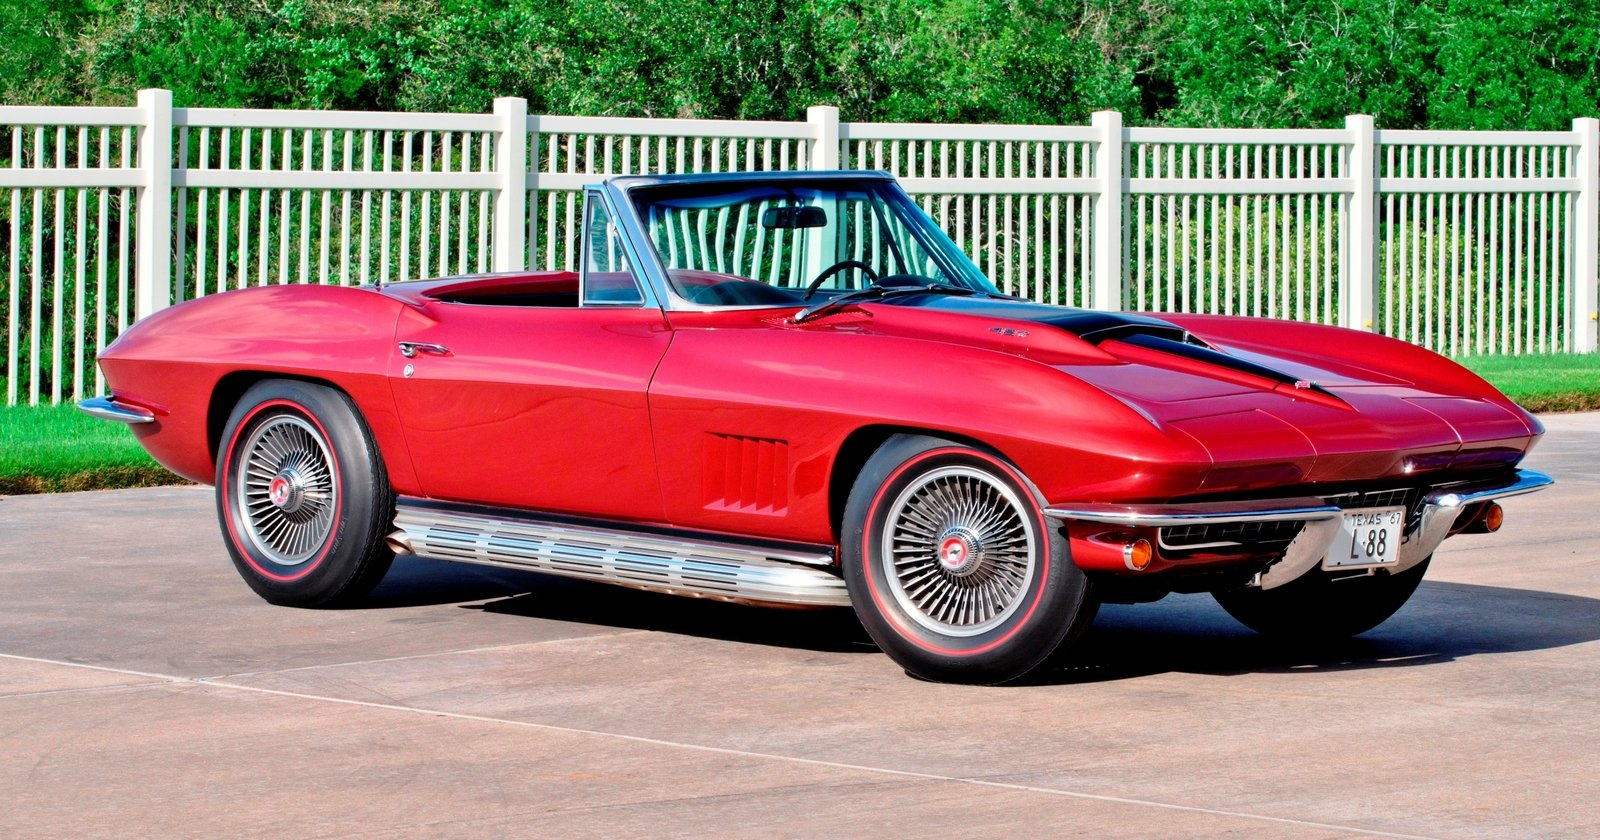 1967 Chevrolet L88 Corvette Sting Ray Convertible Review - Top Speed